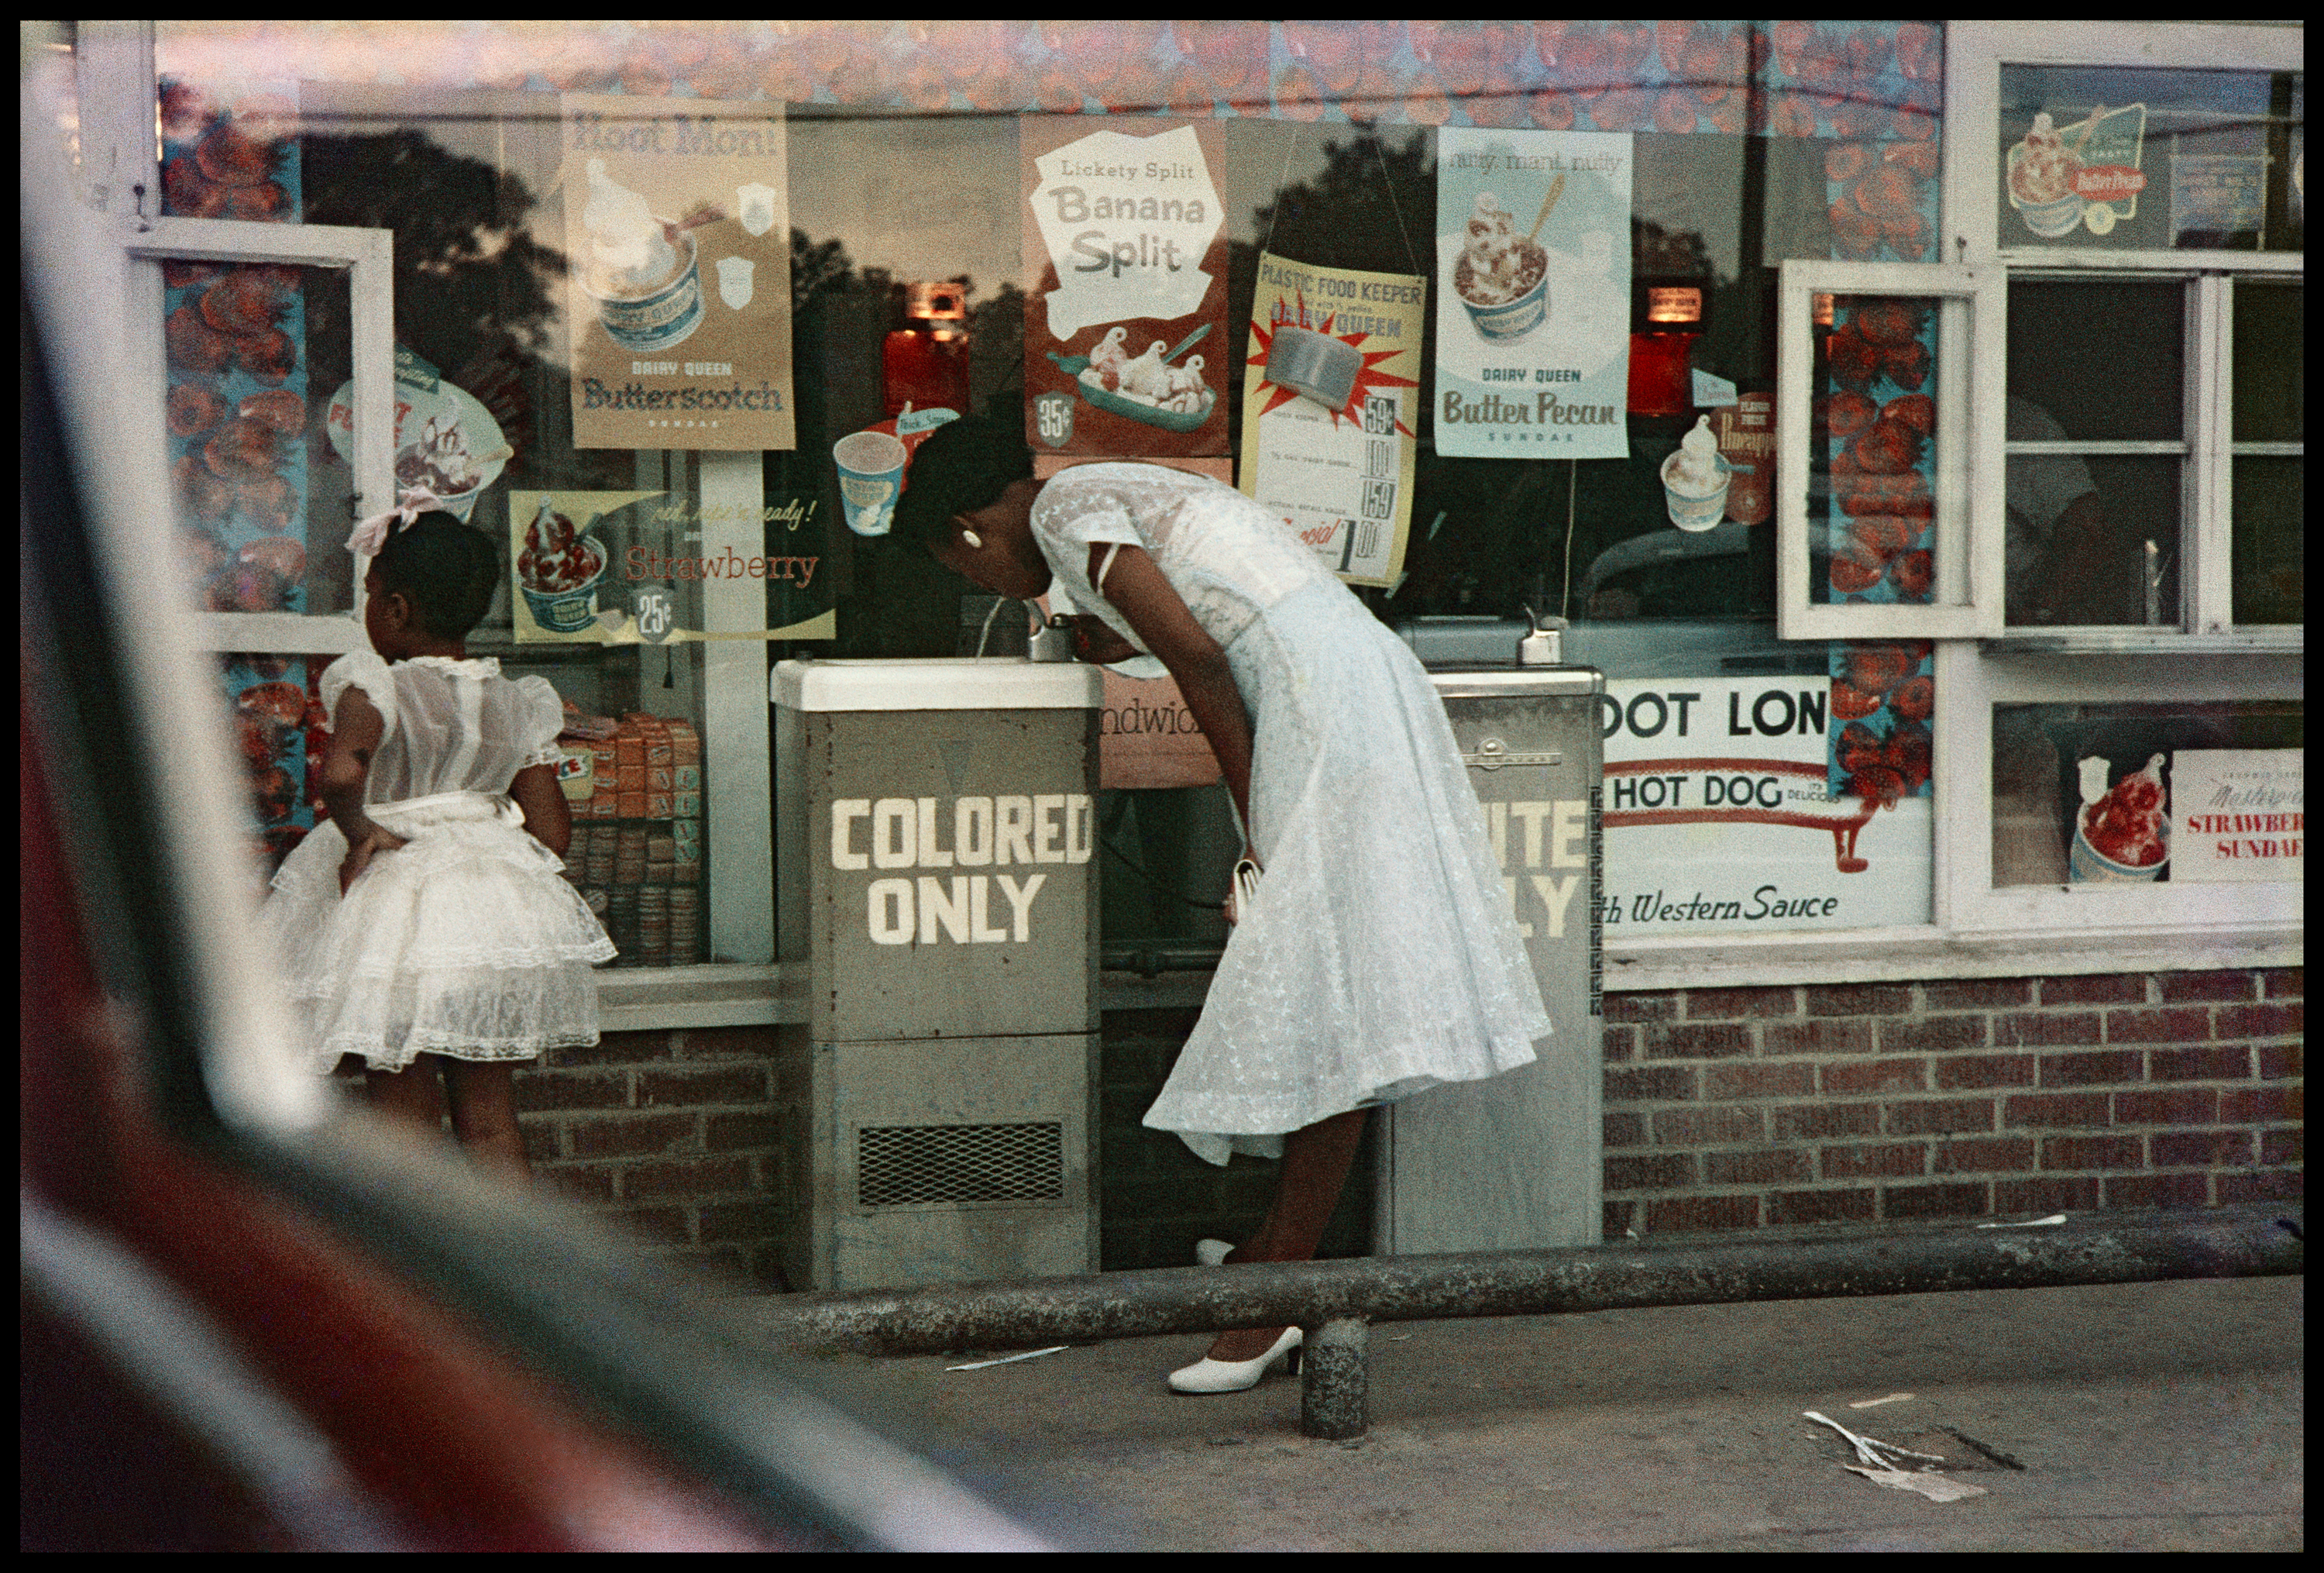 Gordon Parks: Powerful photos capture racism in America